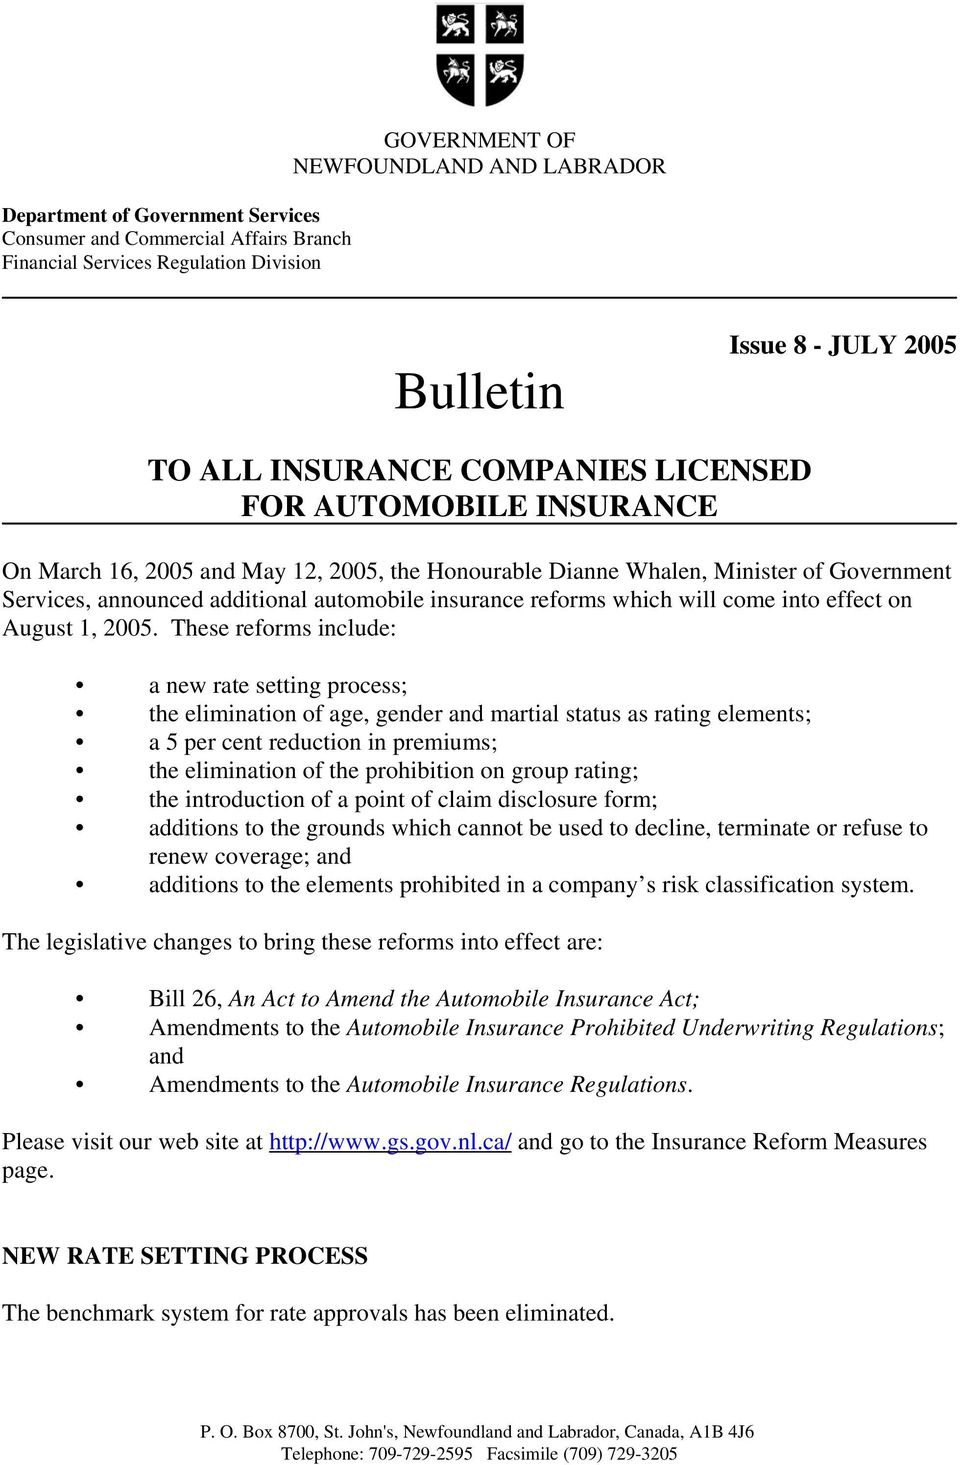 will come into effect on August 1, 2005.